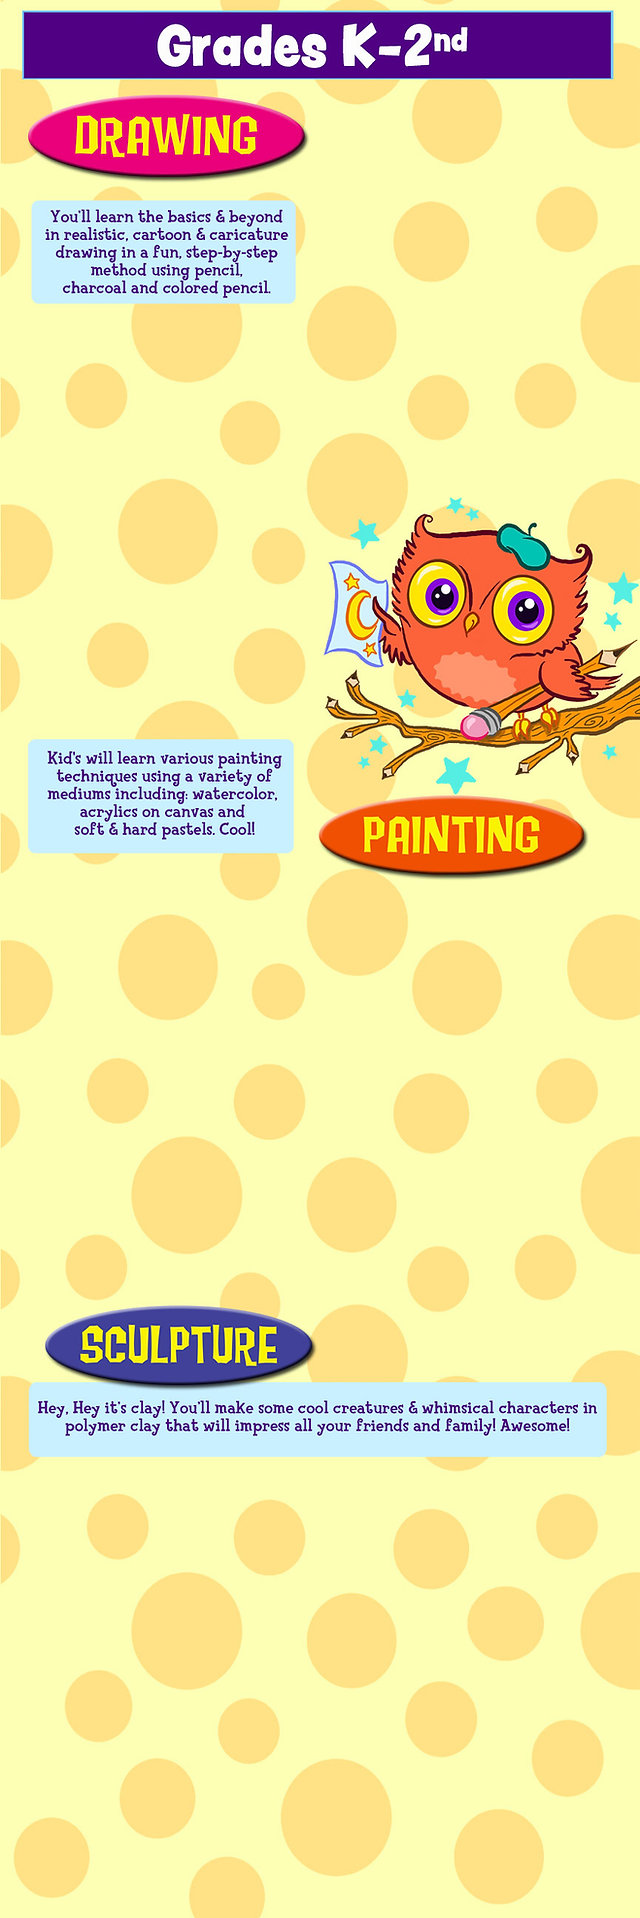 boys girls drawing painting sculpture fish pencil penguin acrylic owls stars happy funny frogs sharks happy funny